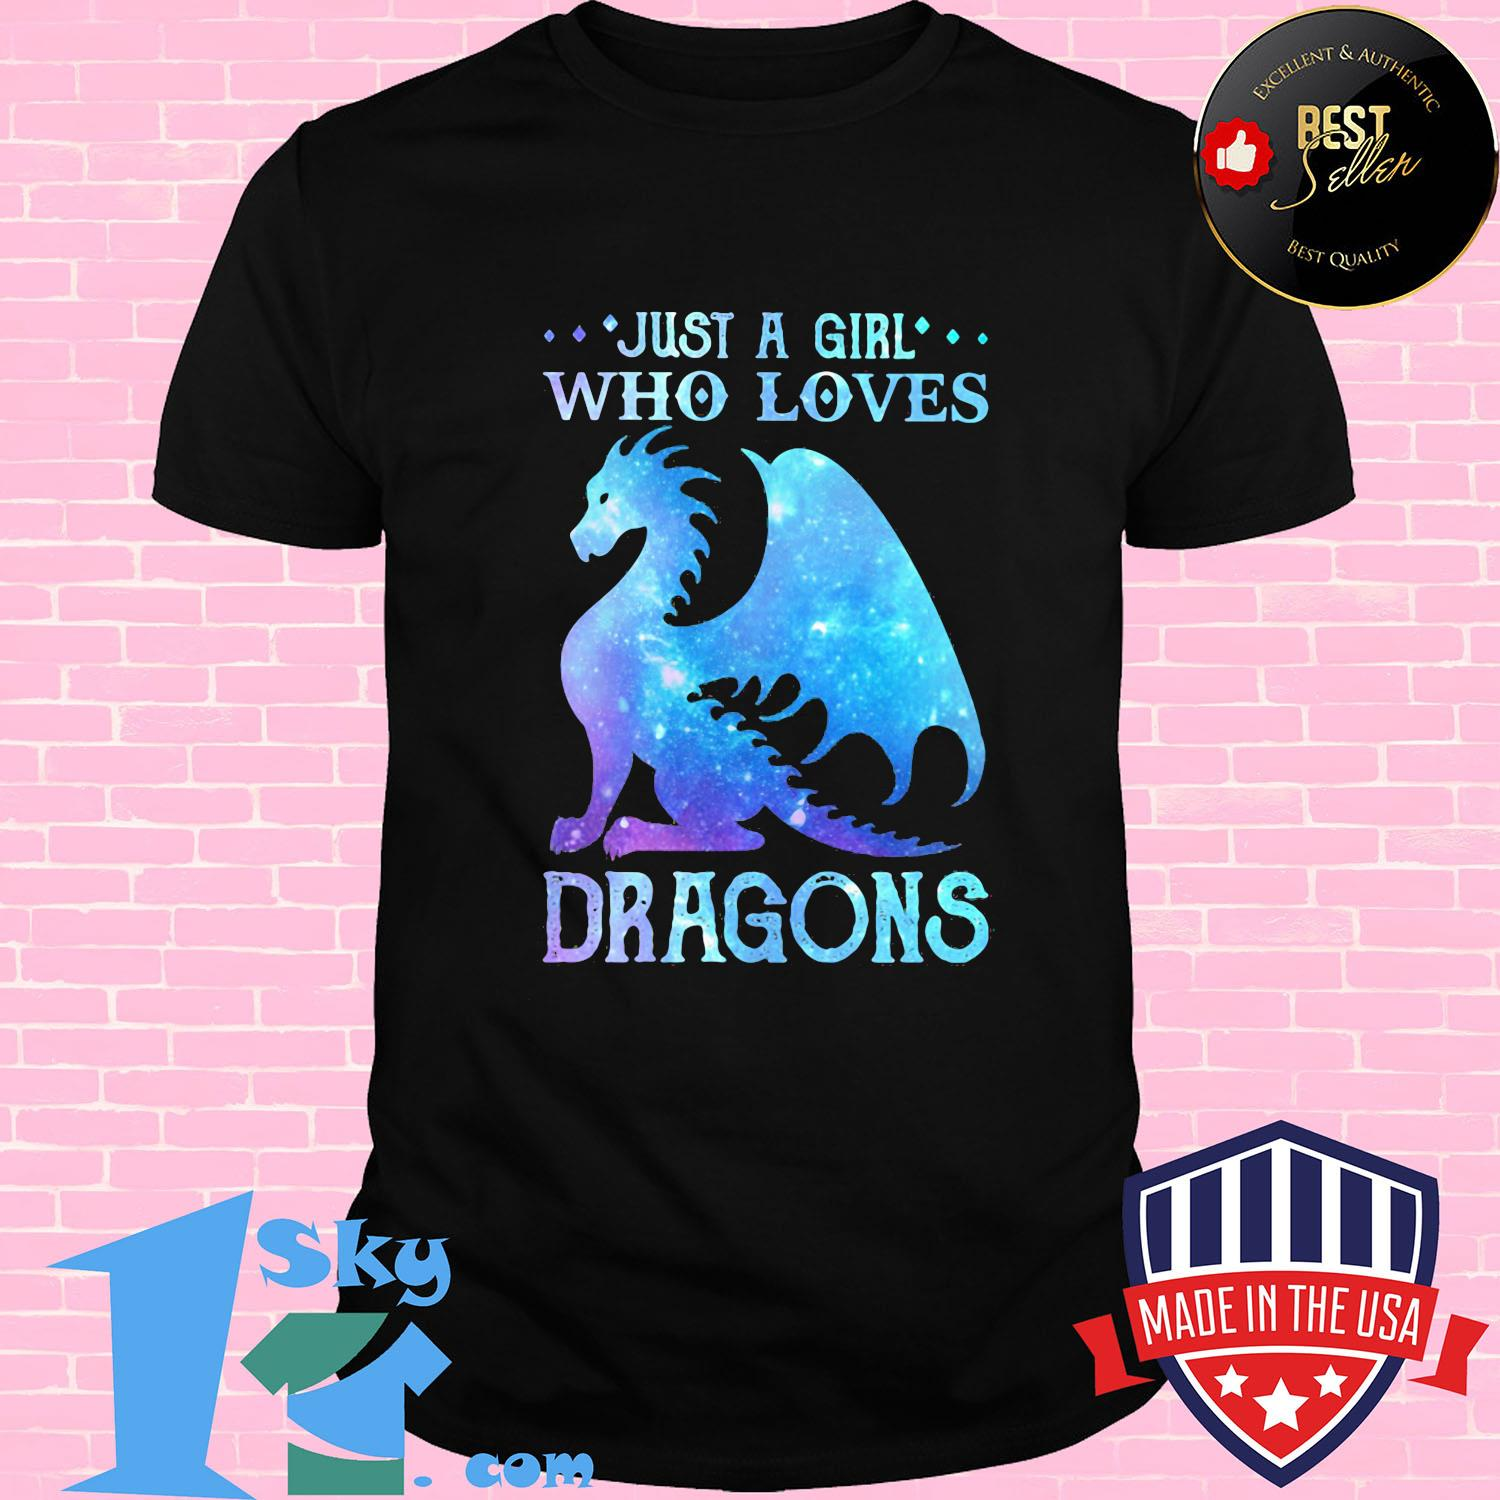 Just a girl who loves dragons shirt